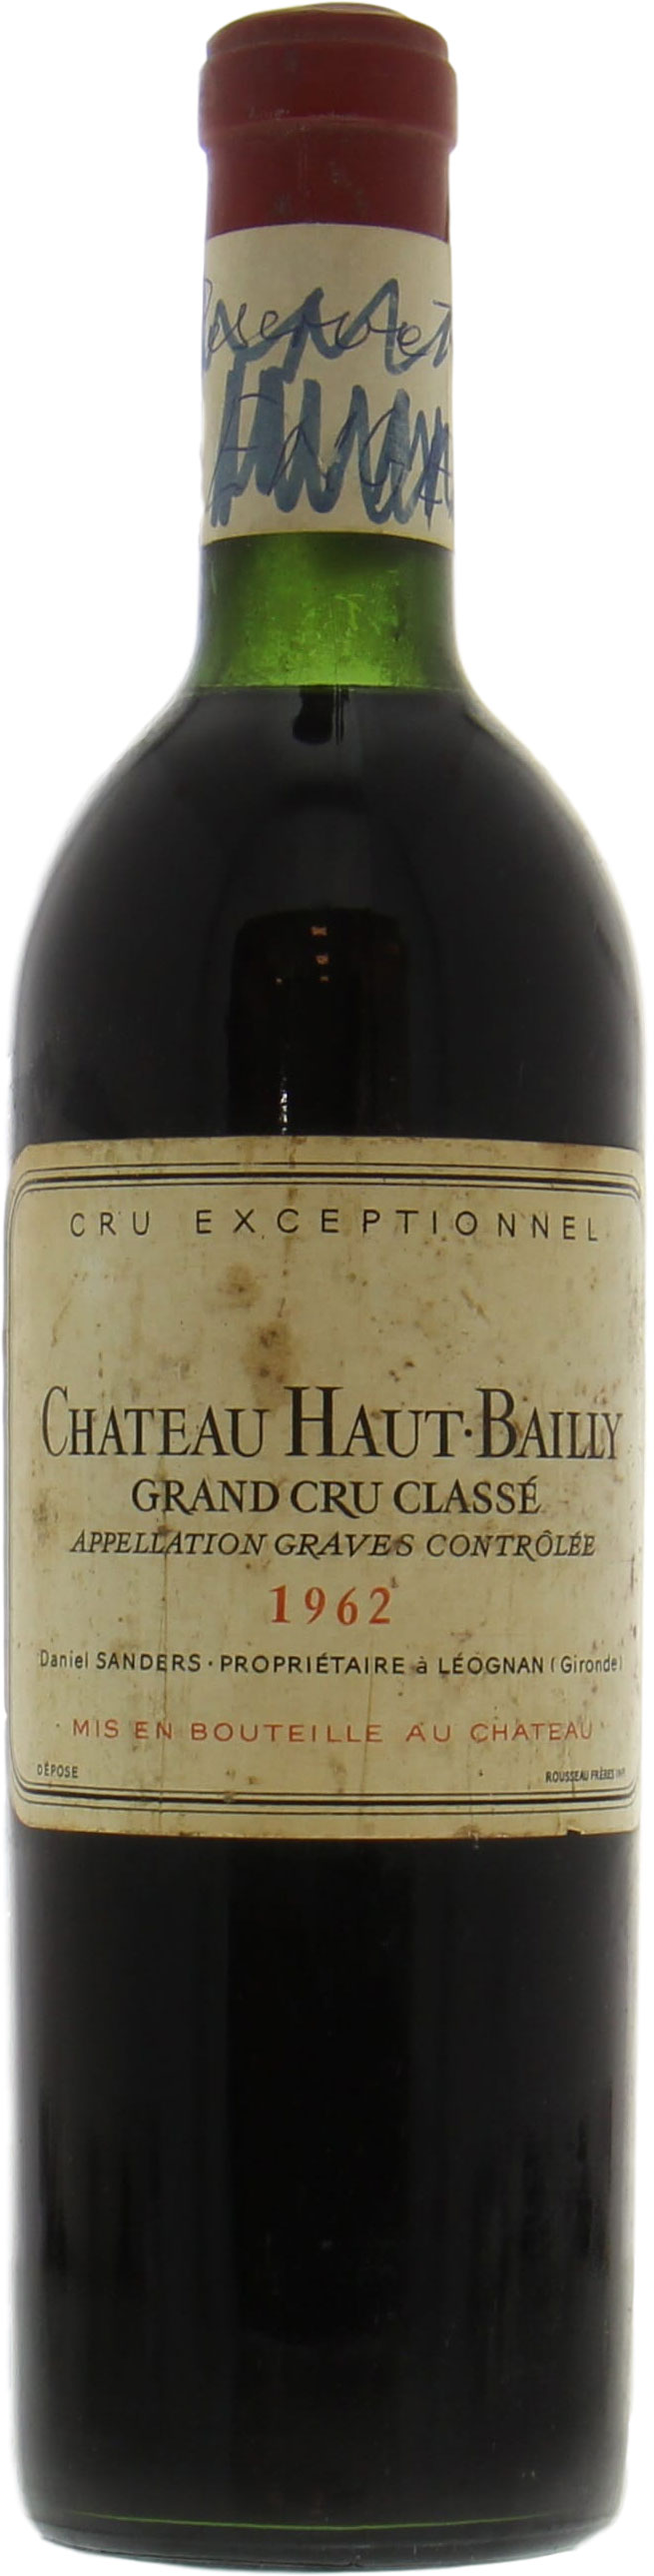 Chateau Haut Bailly - Chateau Haut Bailly 1962